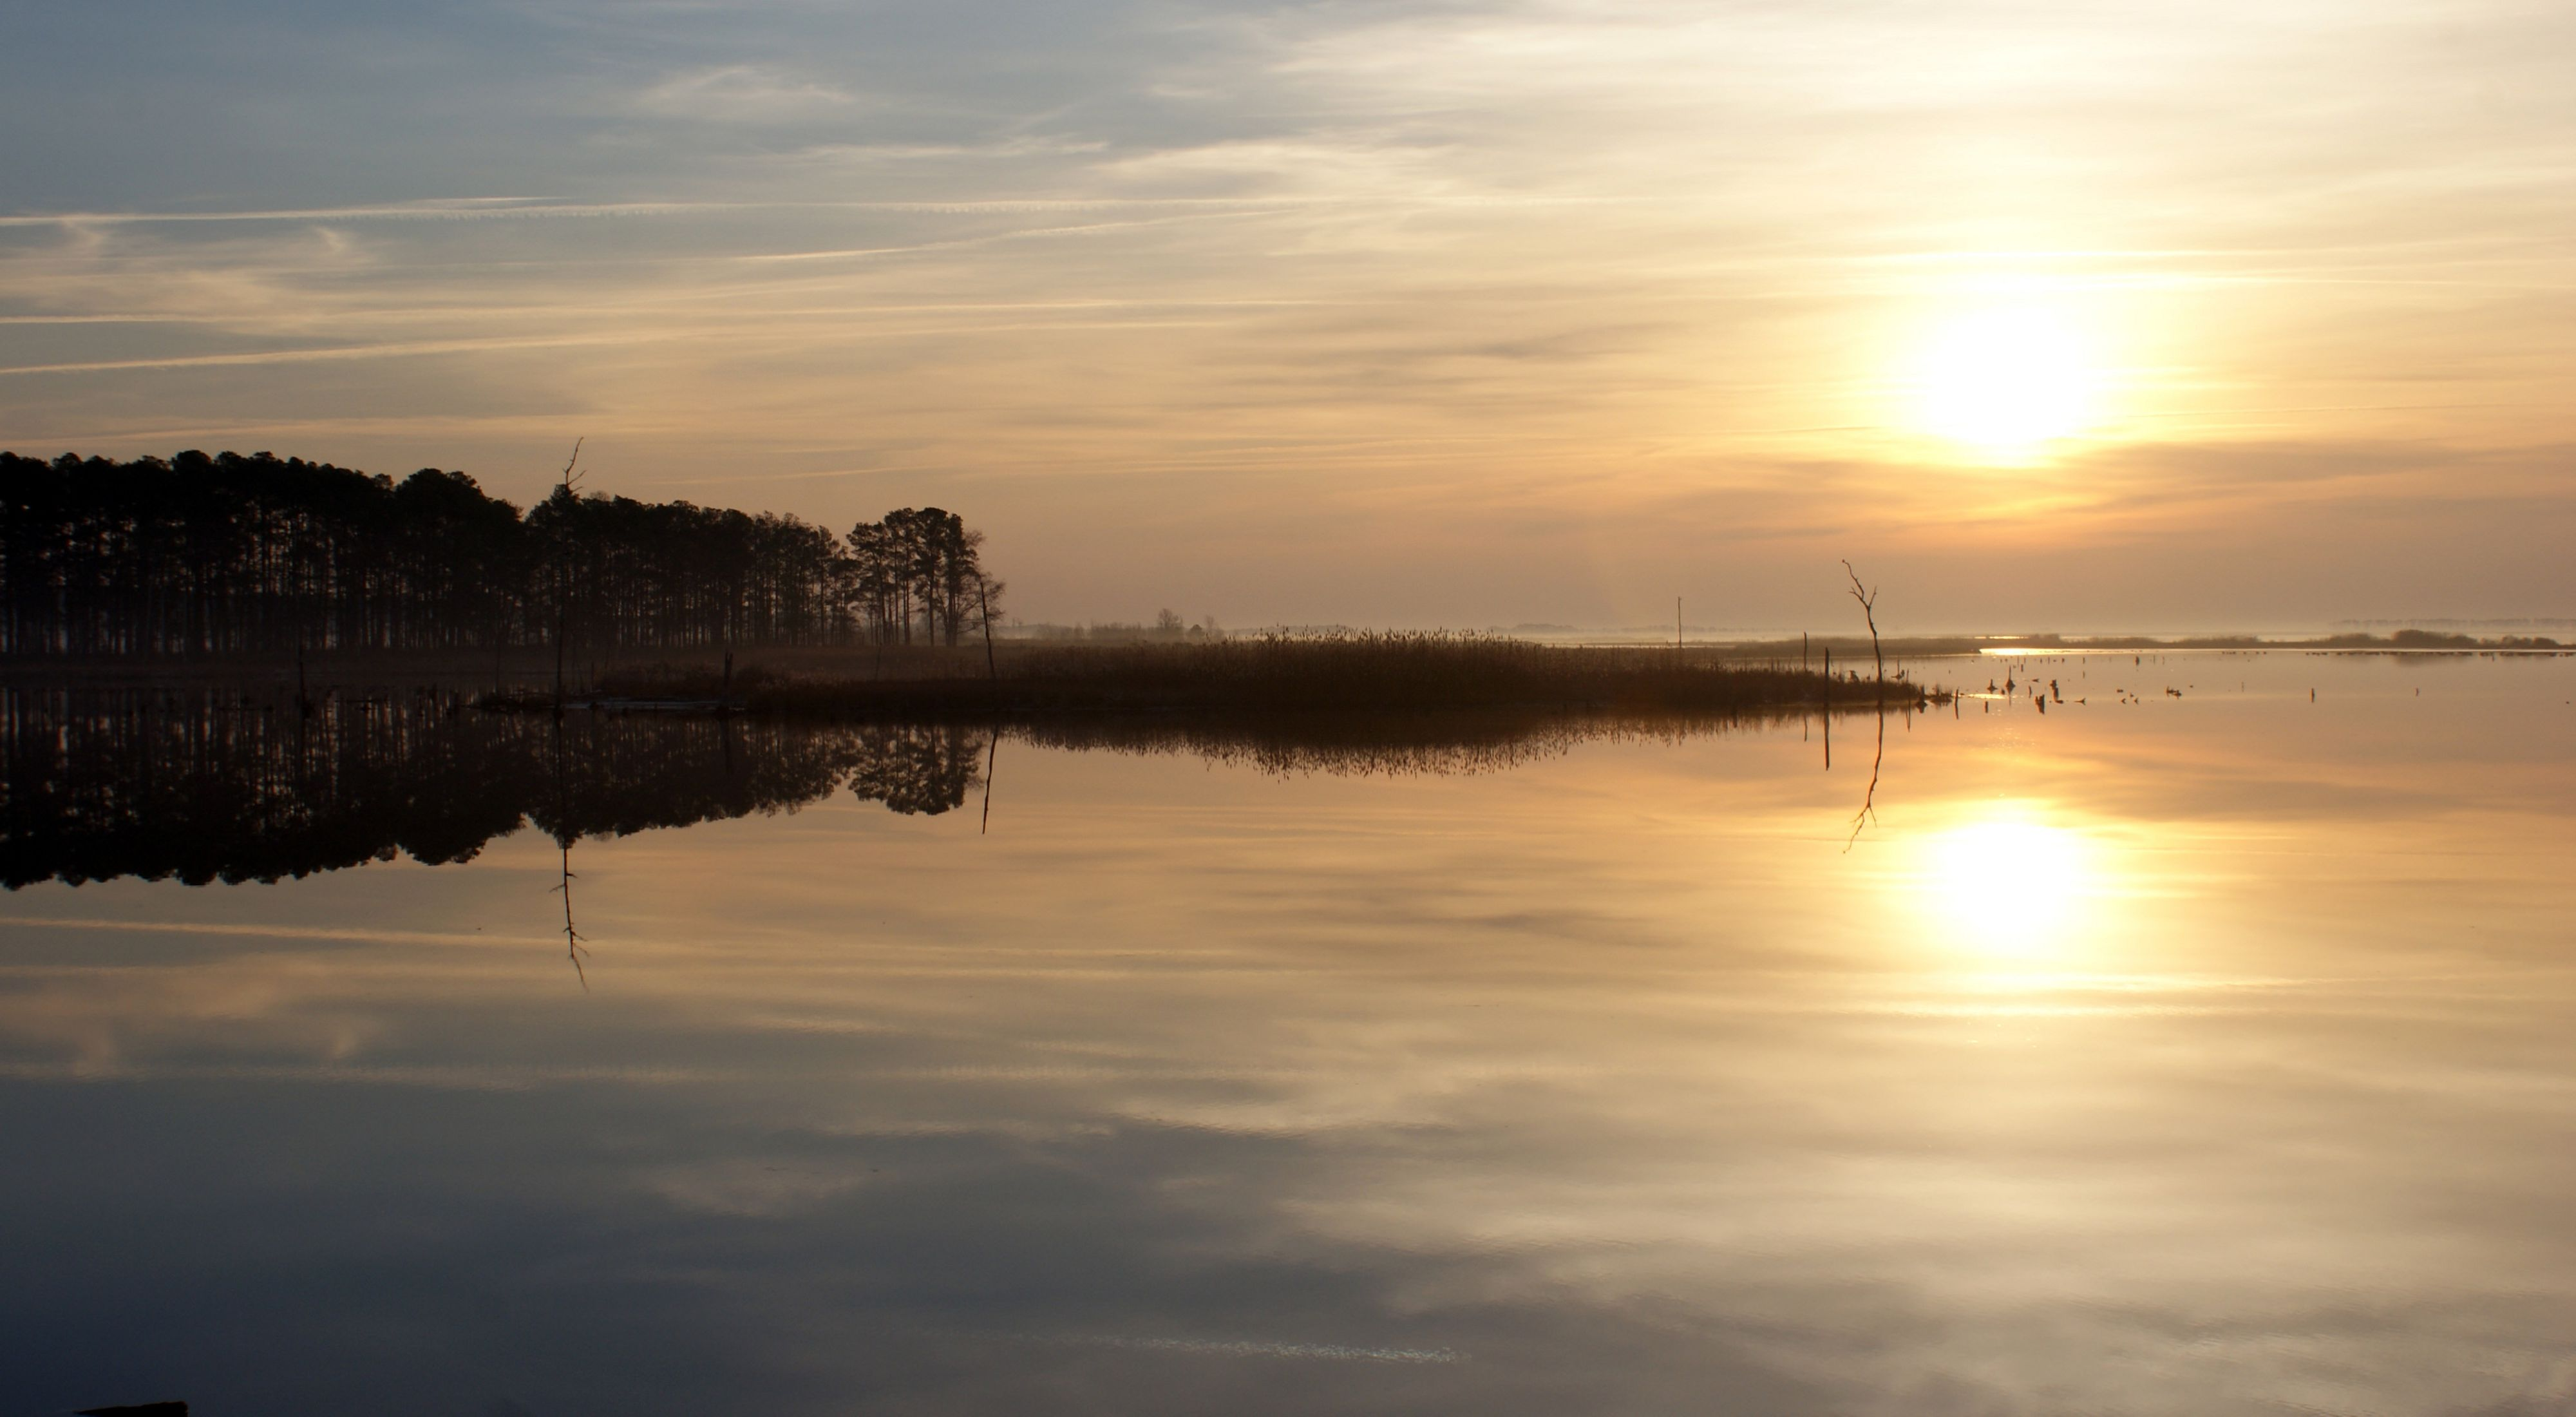 Sunset over Blackwater River